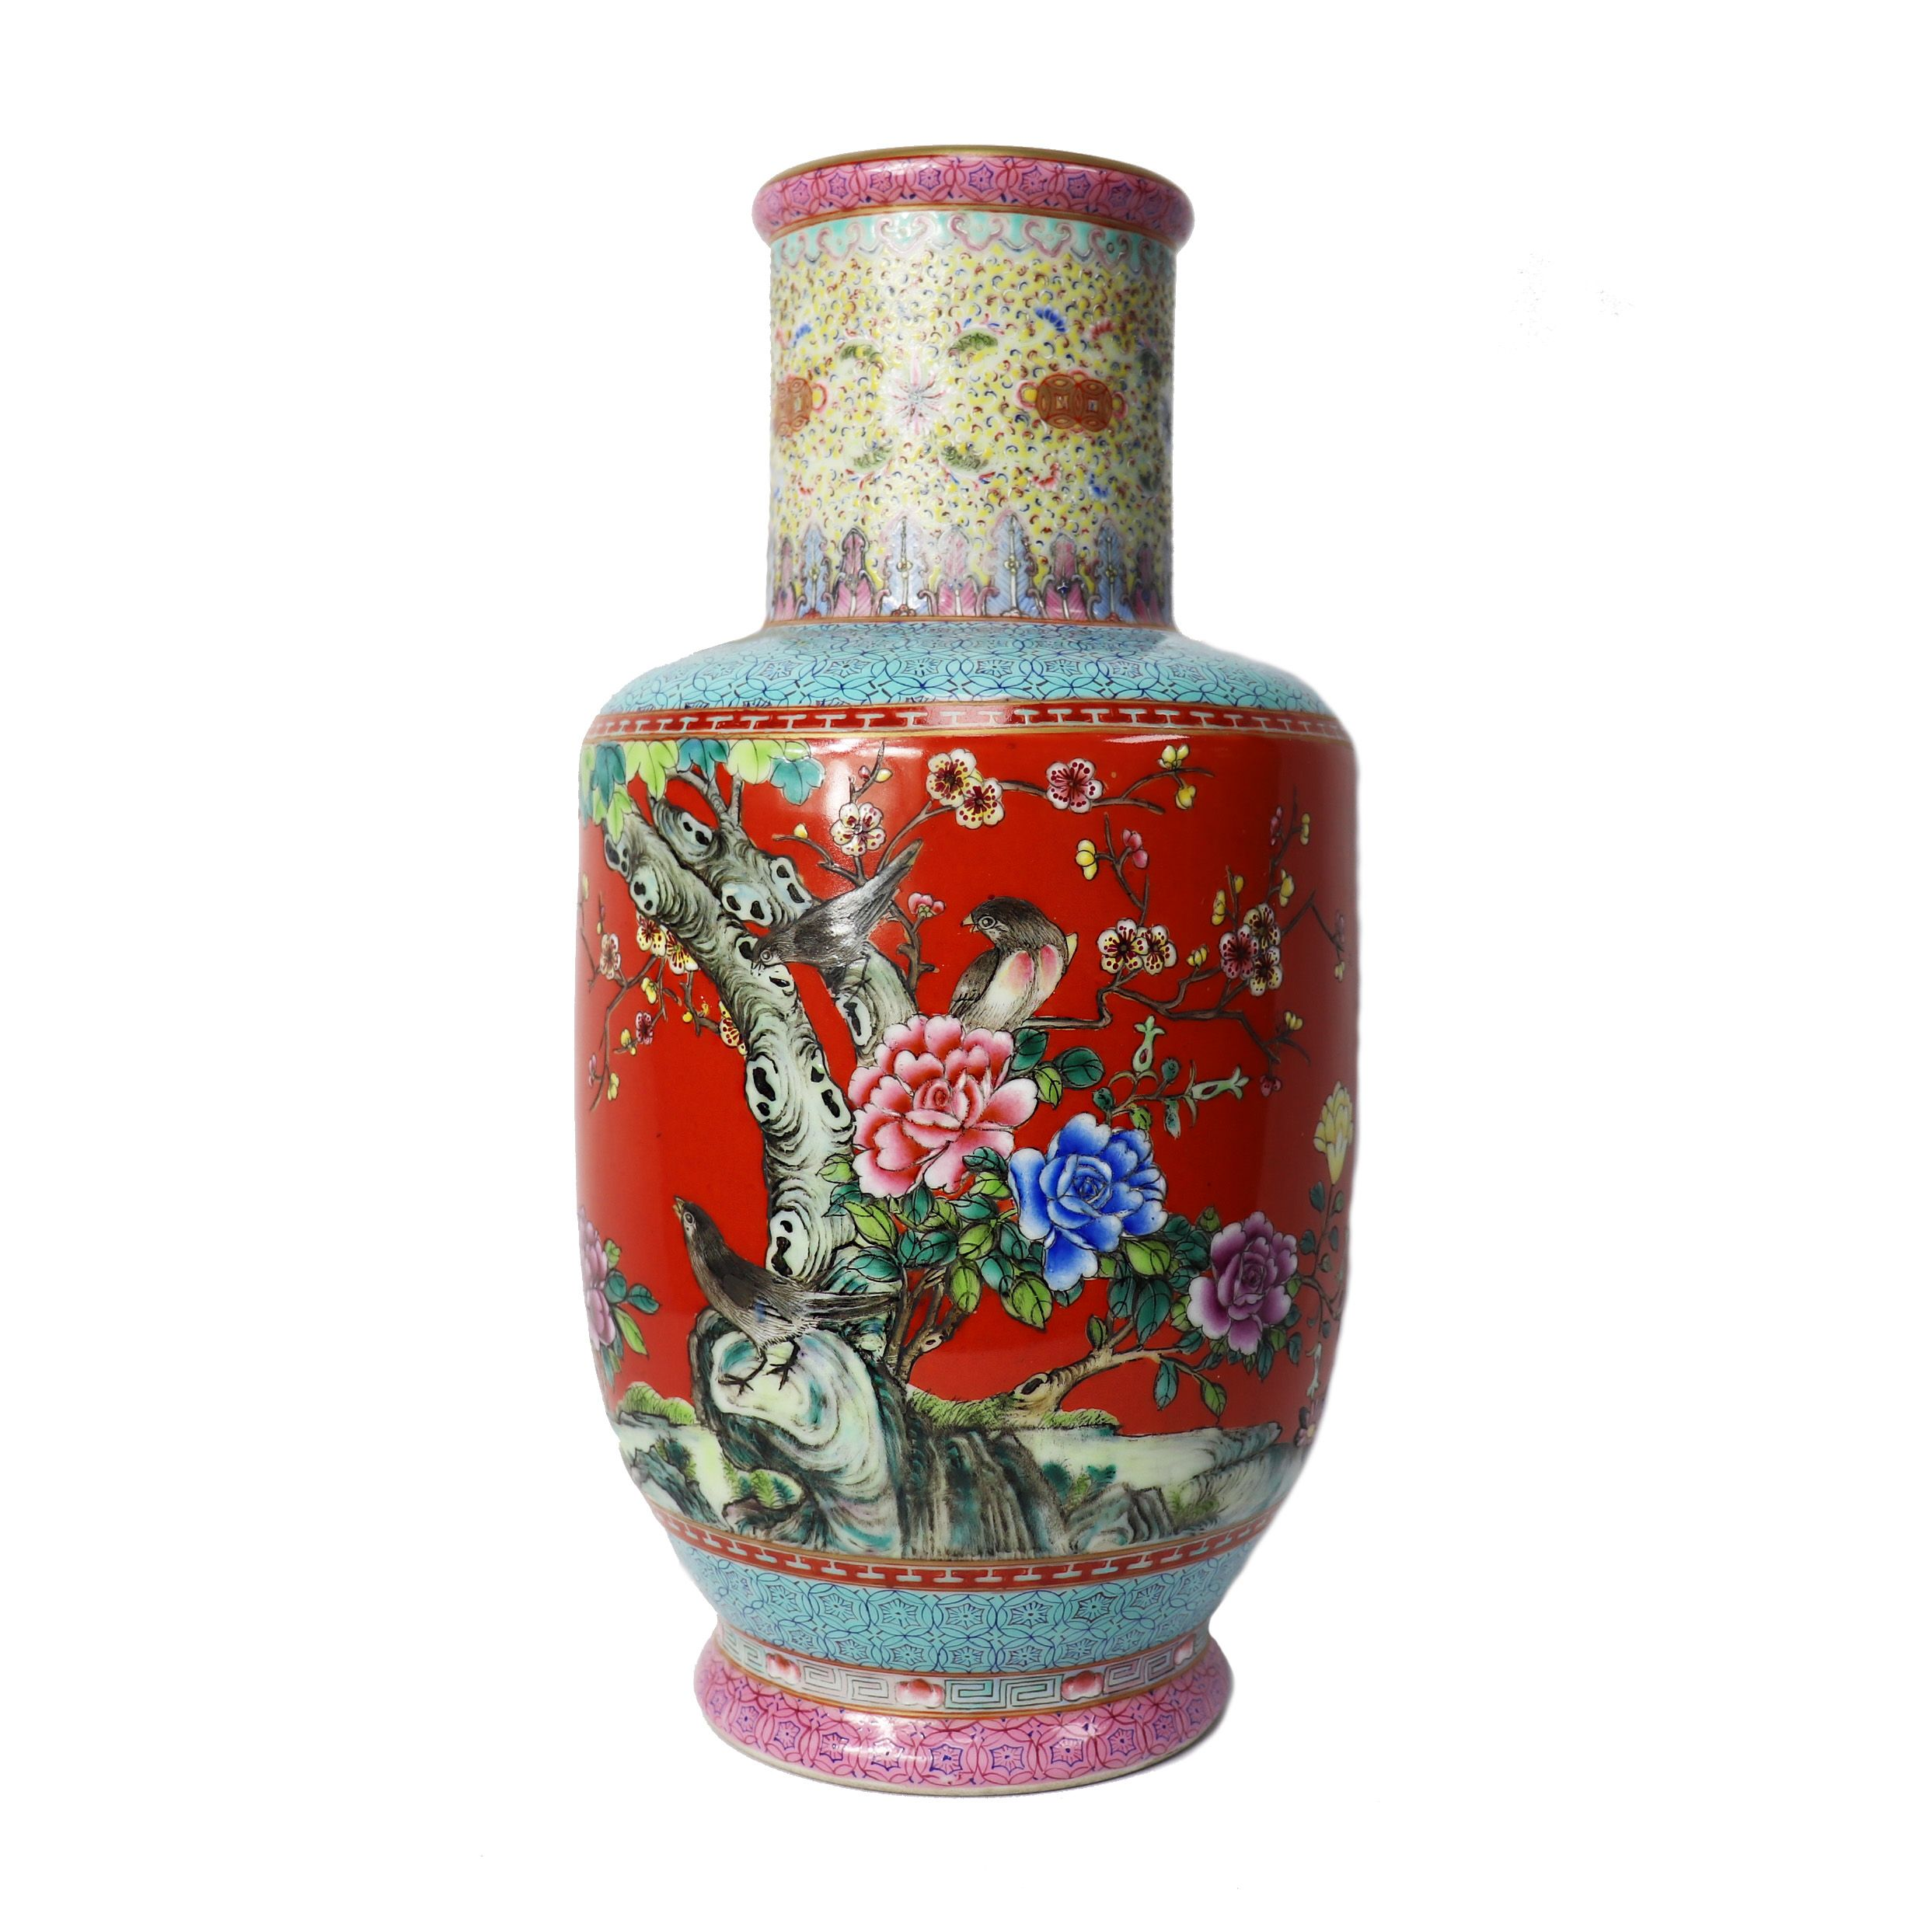 Stunning Vintage Chinese Porcelain Vase With Beautiful Nature Motif Chinese Porcelain Nature Motifs Chinese Porcelain Vase